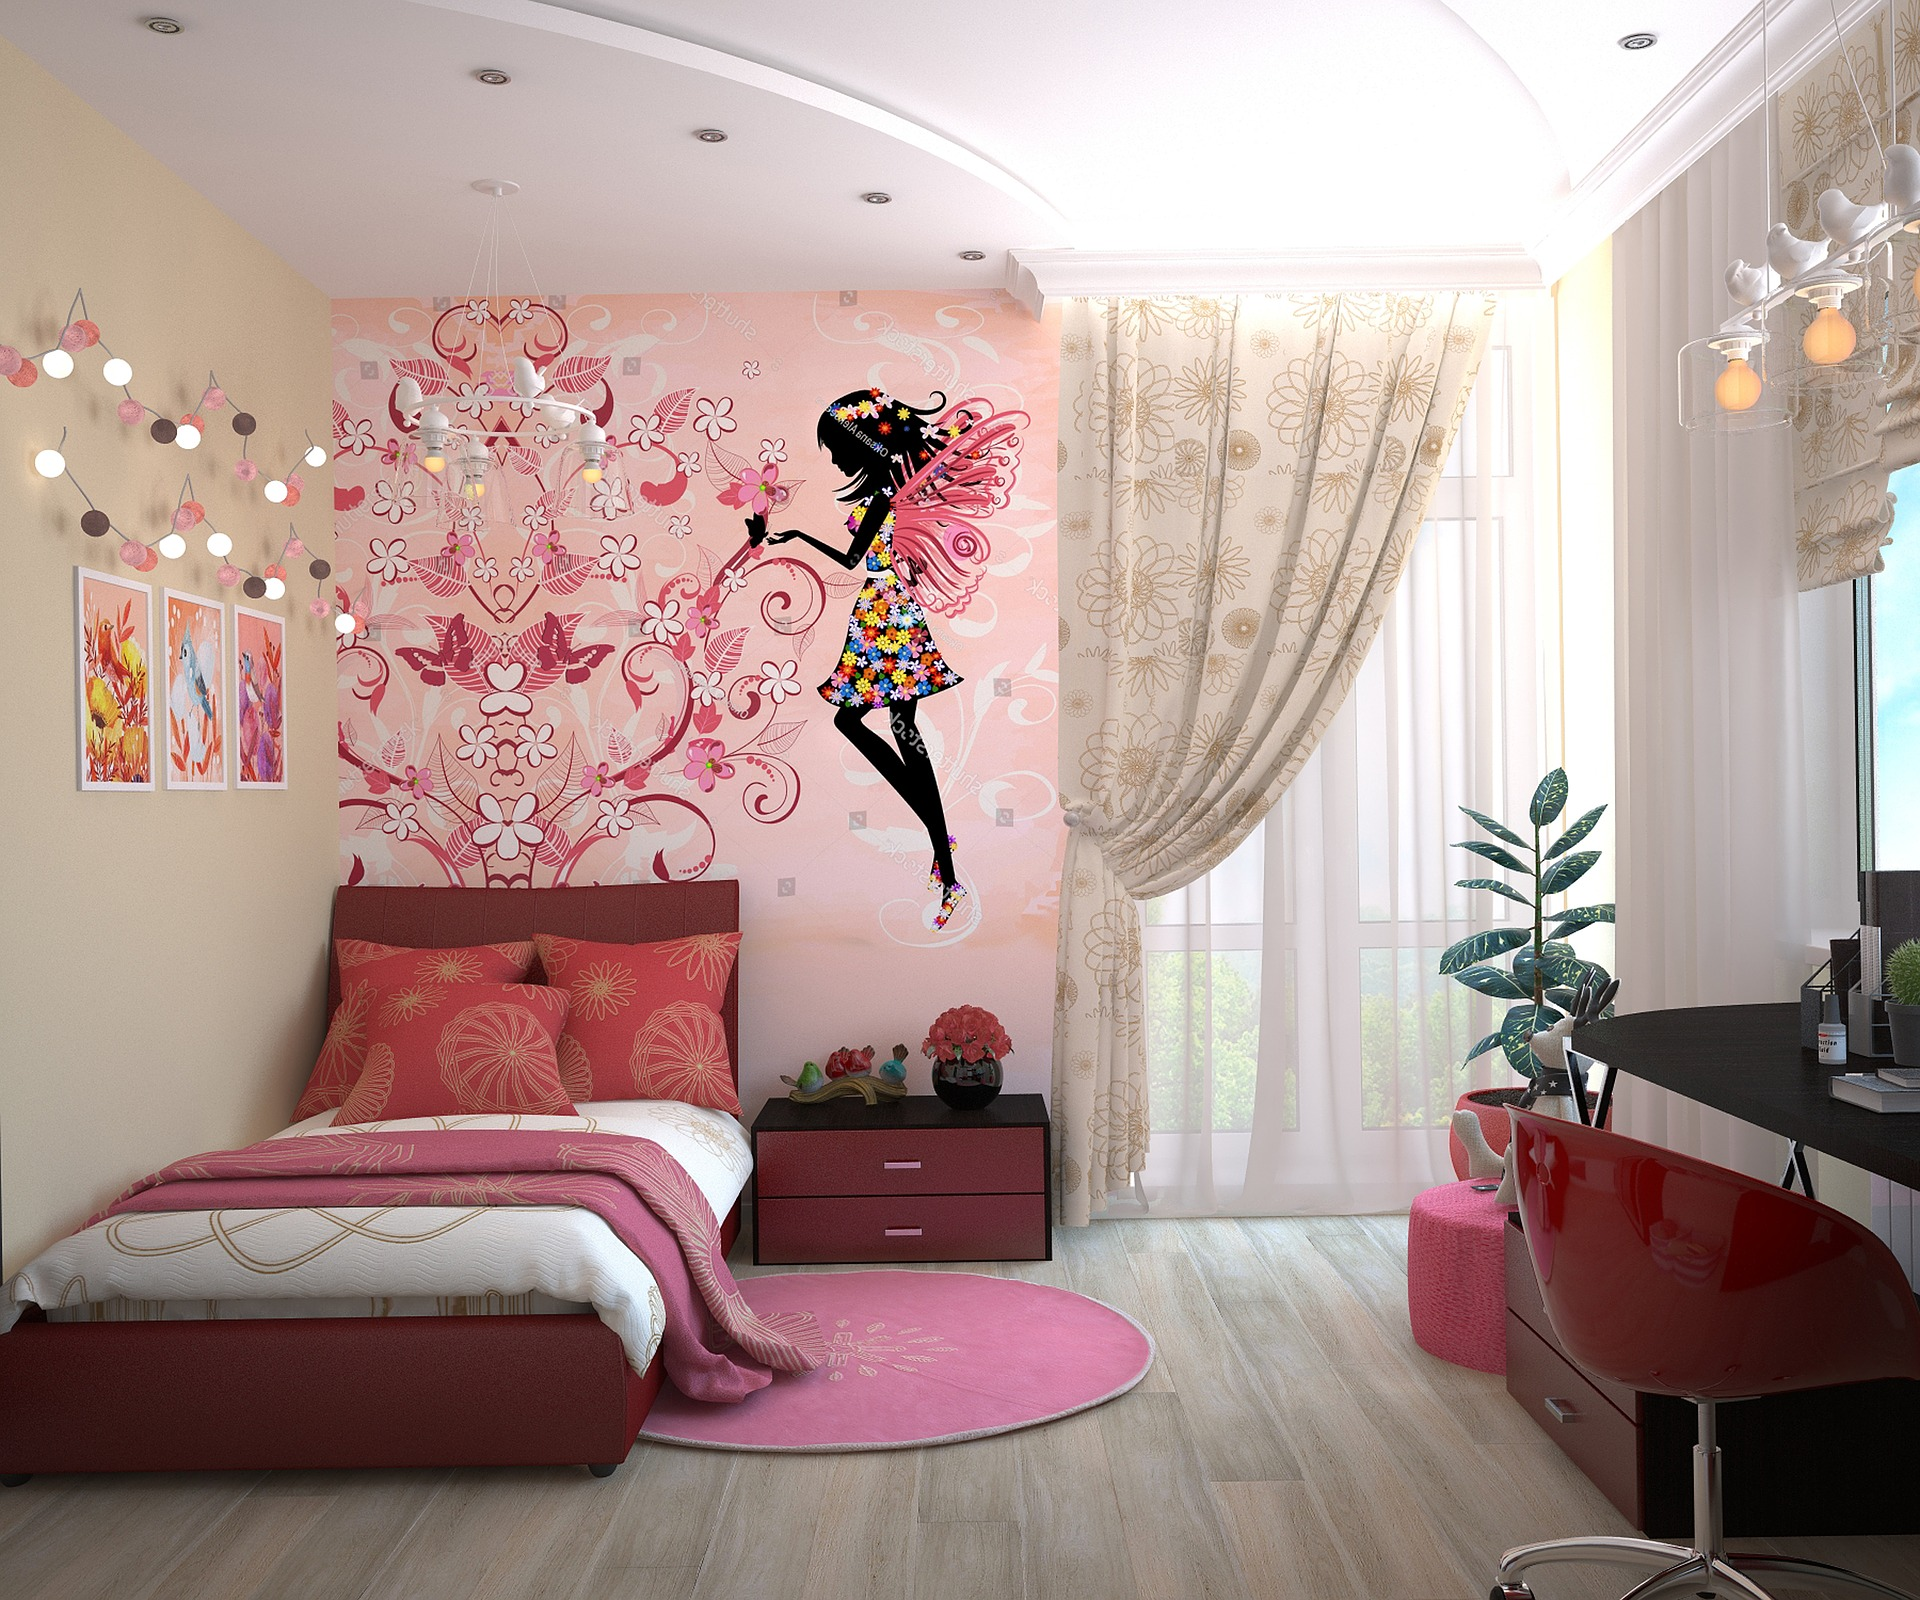 5 Unique Kid S Room Ideas That Will Give Your Child The Perfect Ambience To Grow